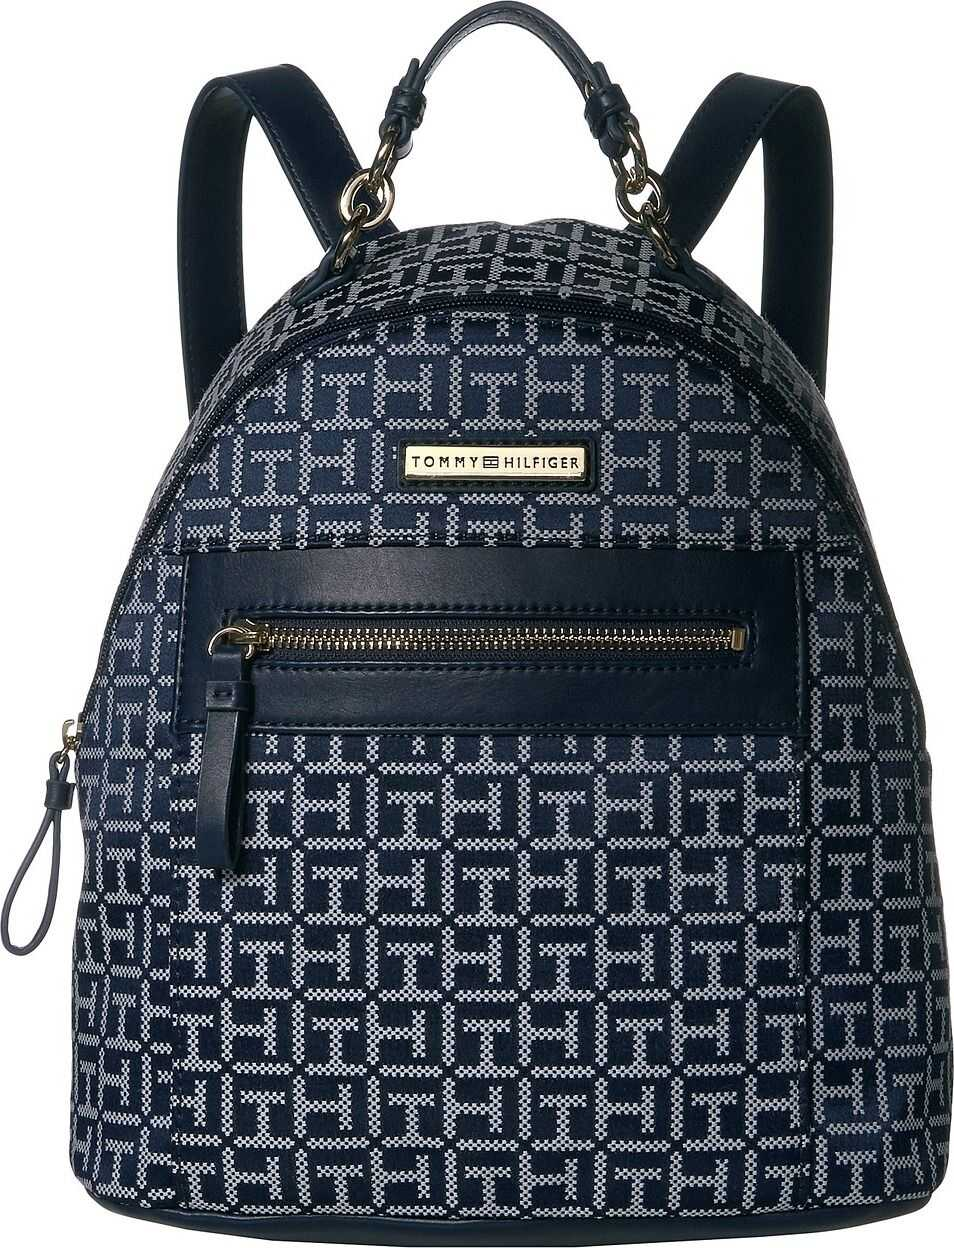 Tommy Hilfiger Claudia Jacquard Dome Backpack Navy Tonal